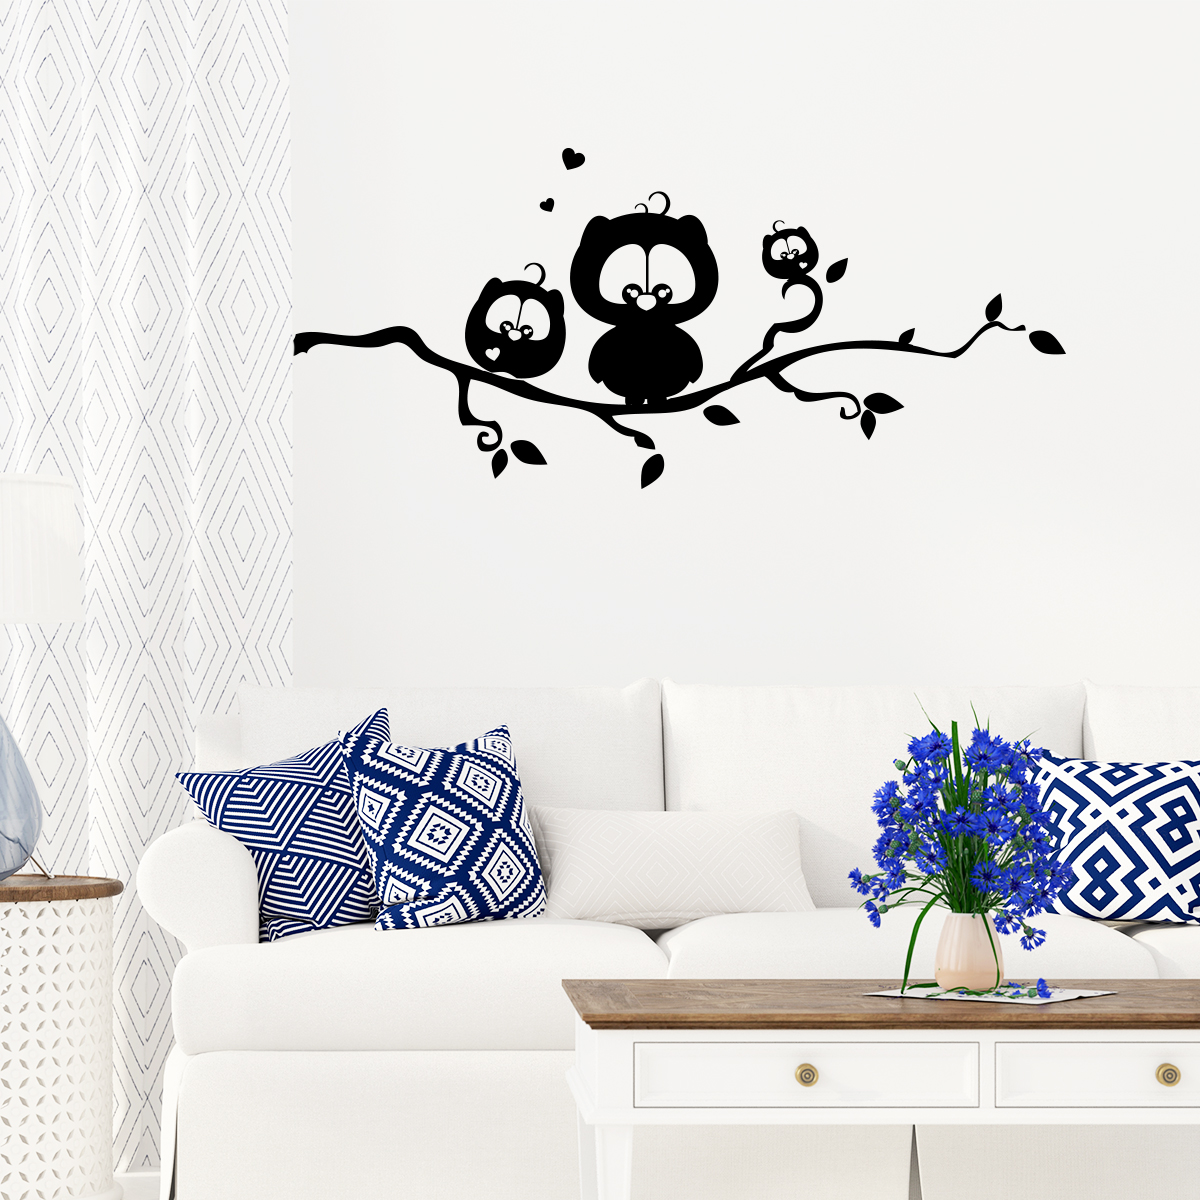 sticker hiboux mignons de la nuit stickers nature arbres ambiance sticker. Black Bedroom Furniture Sets. Home Design Ideas